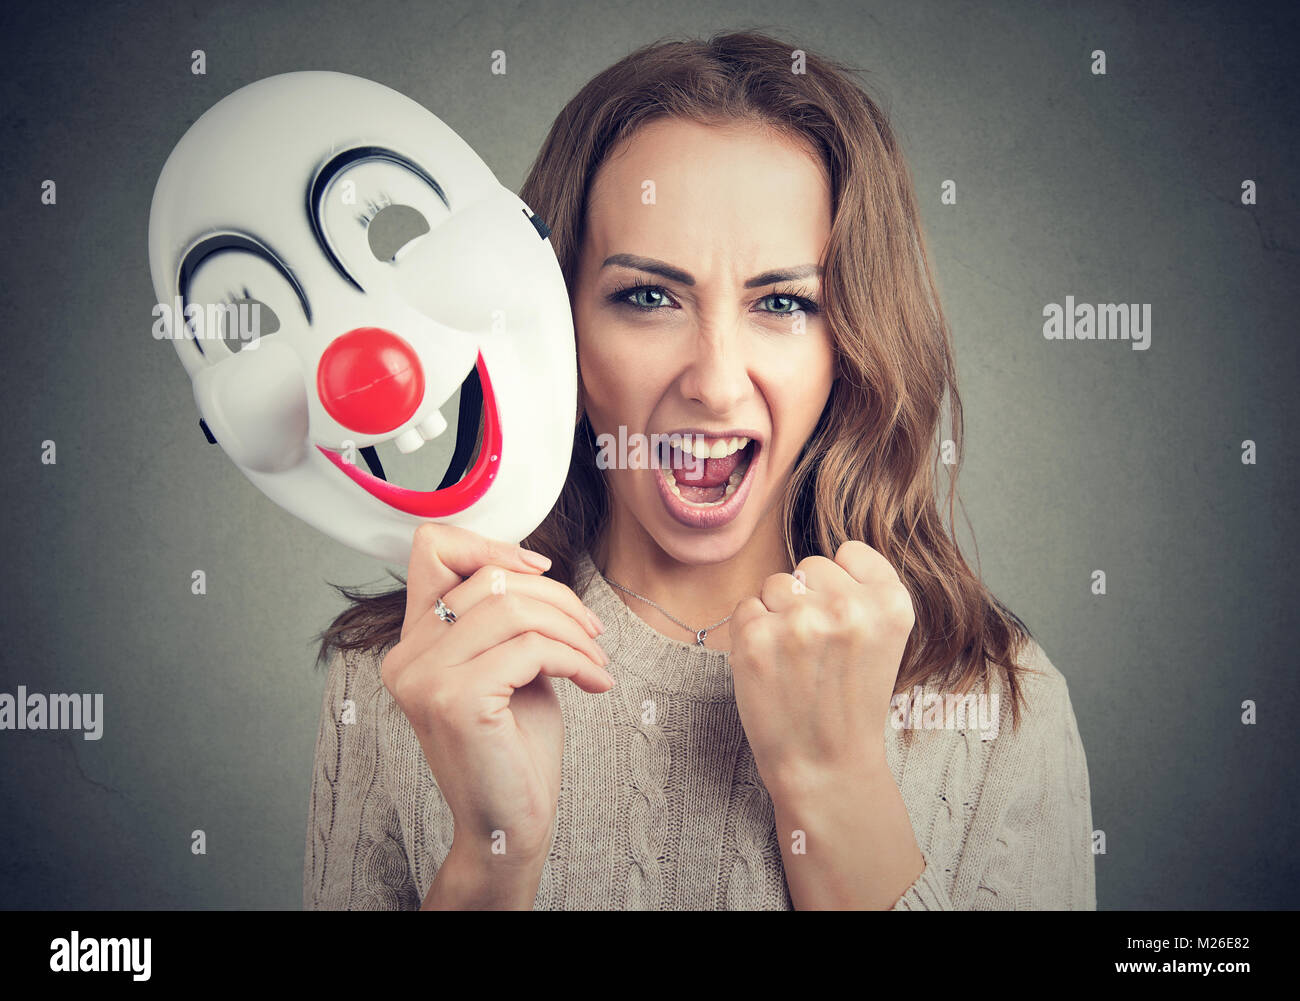 Young woman holding clown mask and screaming at camera on gray. - Stock Image